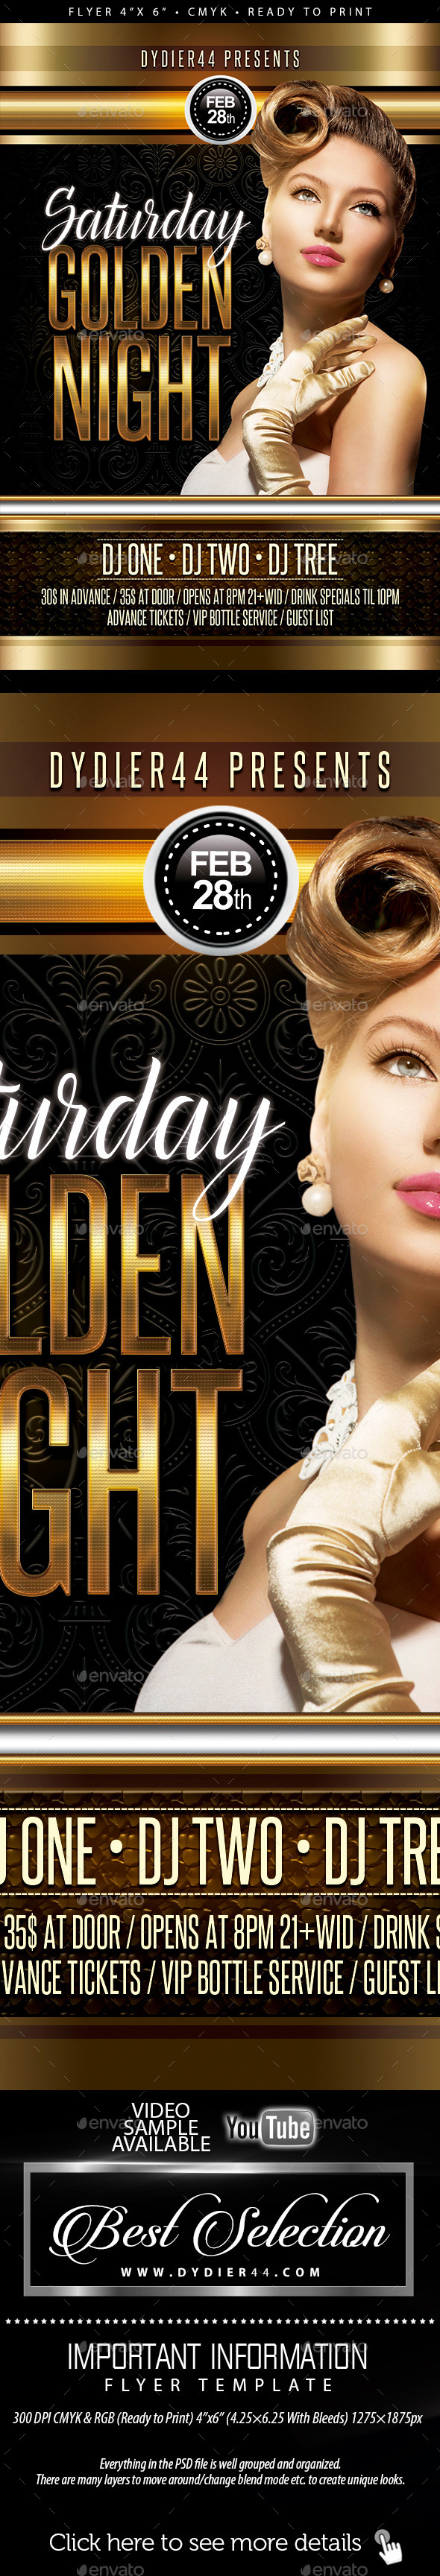 GraphicRiver Saturday Golden Nights Flyer Template 4x6 11760621